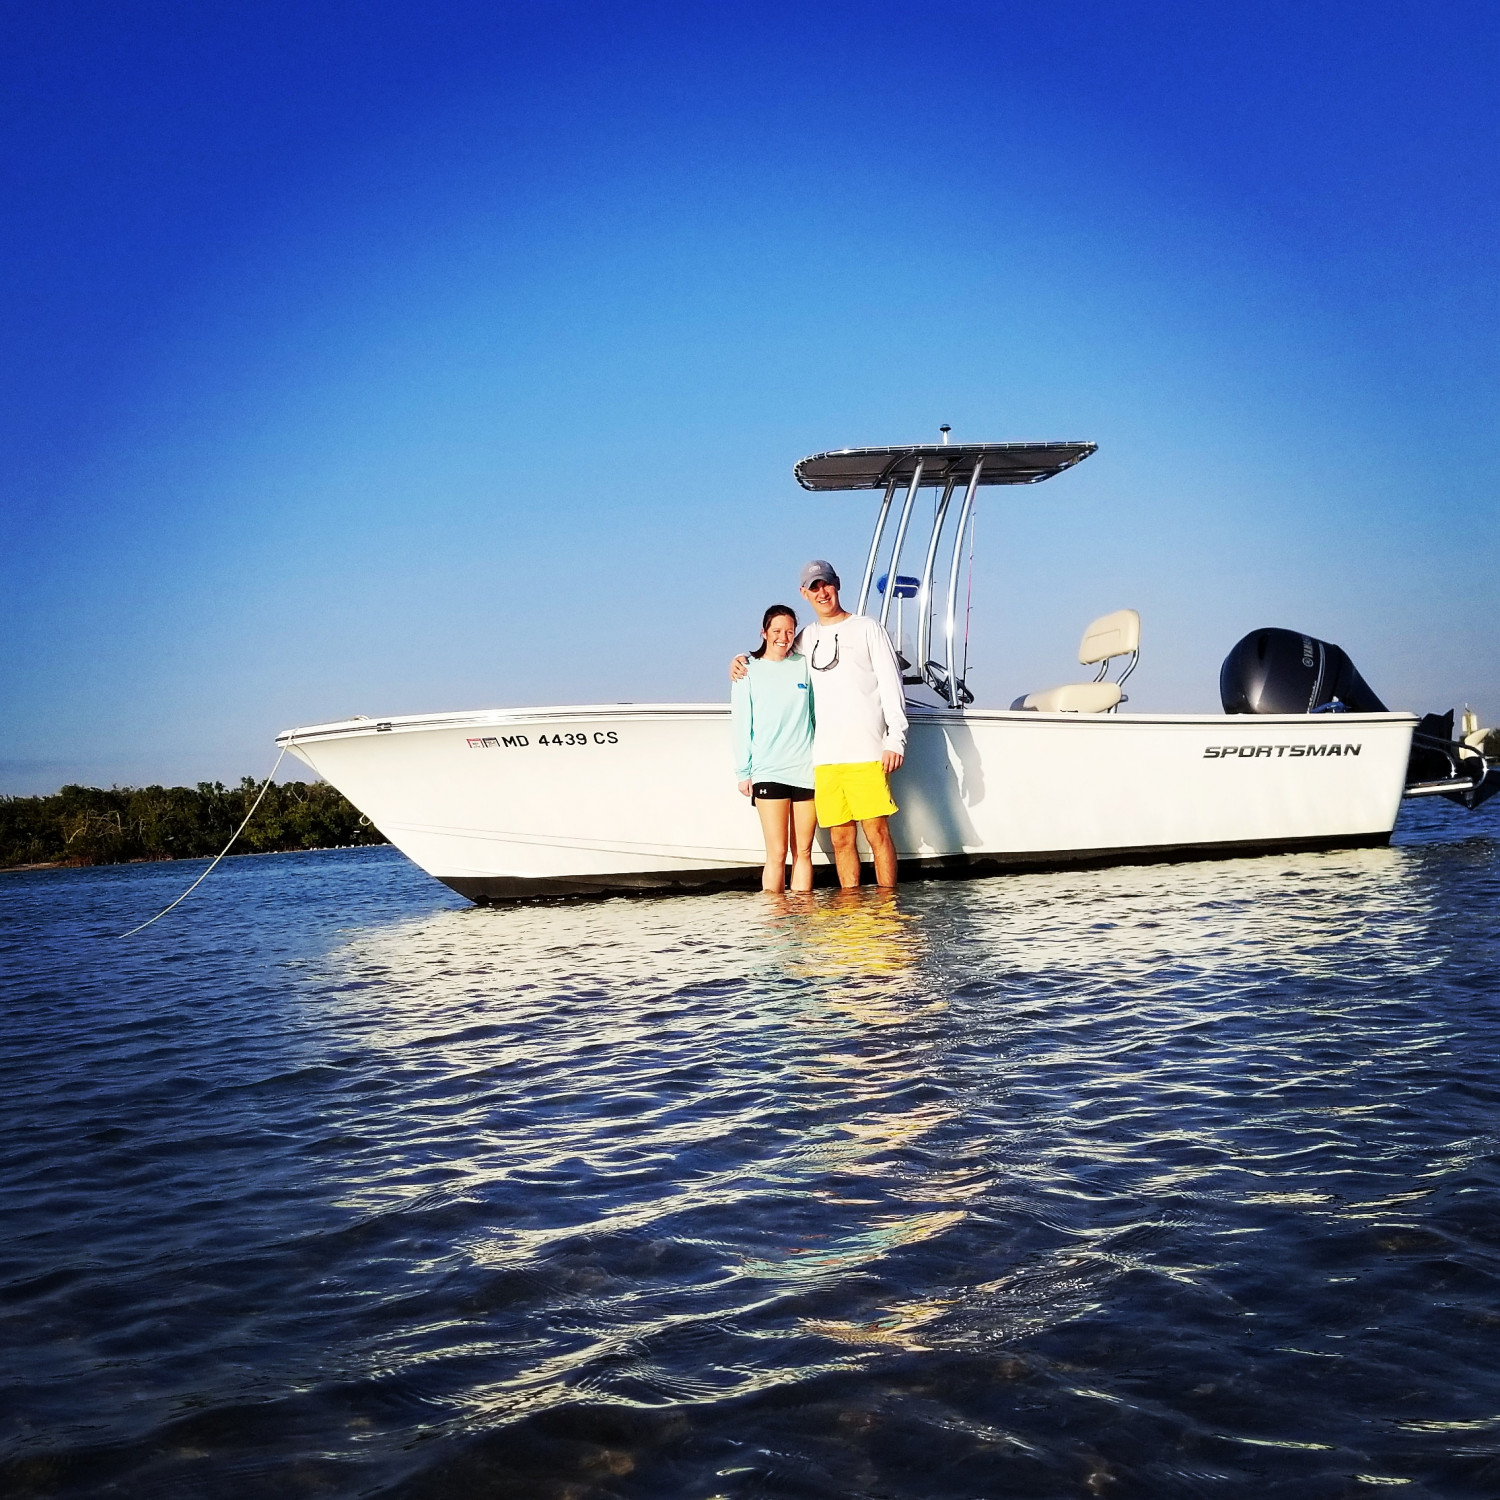 Title: Island hopping - On board their Sportsman Island Reef 19 Center Console - Location: Stump Pass State park, Florida. Participating in the Photo Contest #SportsmanJanuary2018